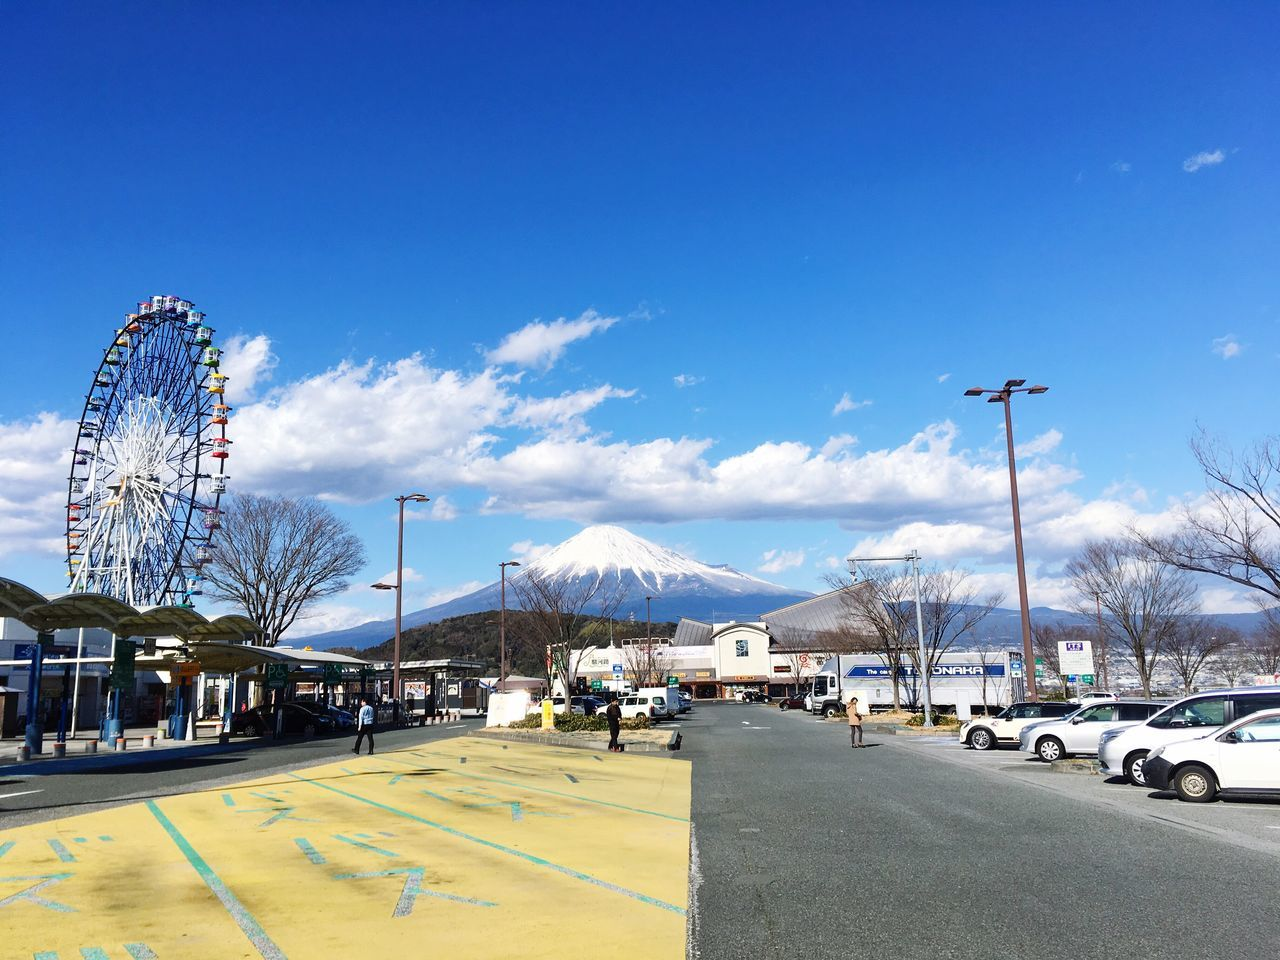 sky, blue, day, amusement park, outdoors, road, car, transportation, cloud - sky, bare tree, no people, snow, tree, nature